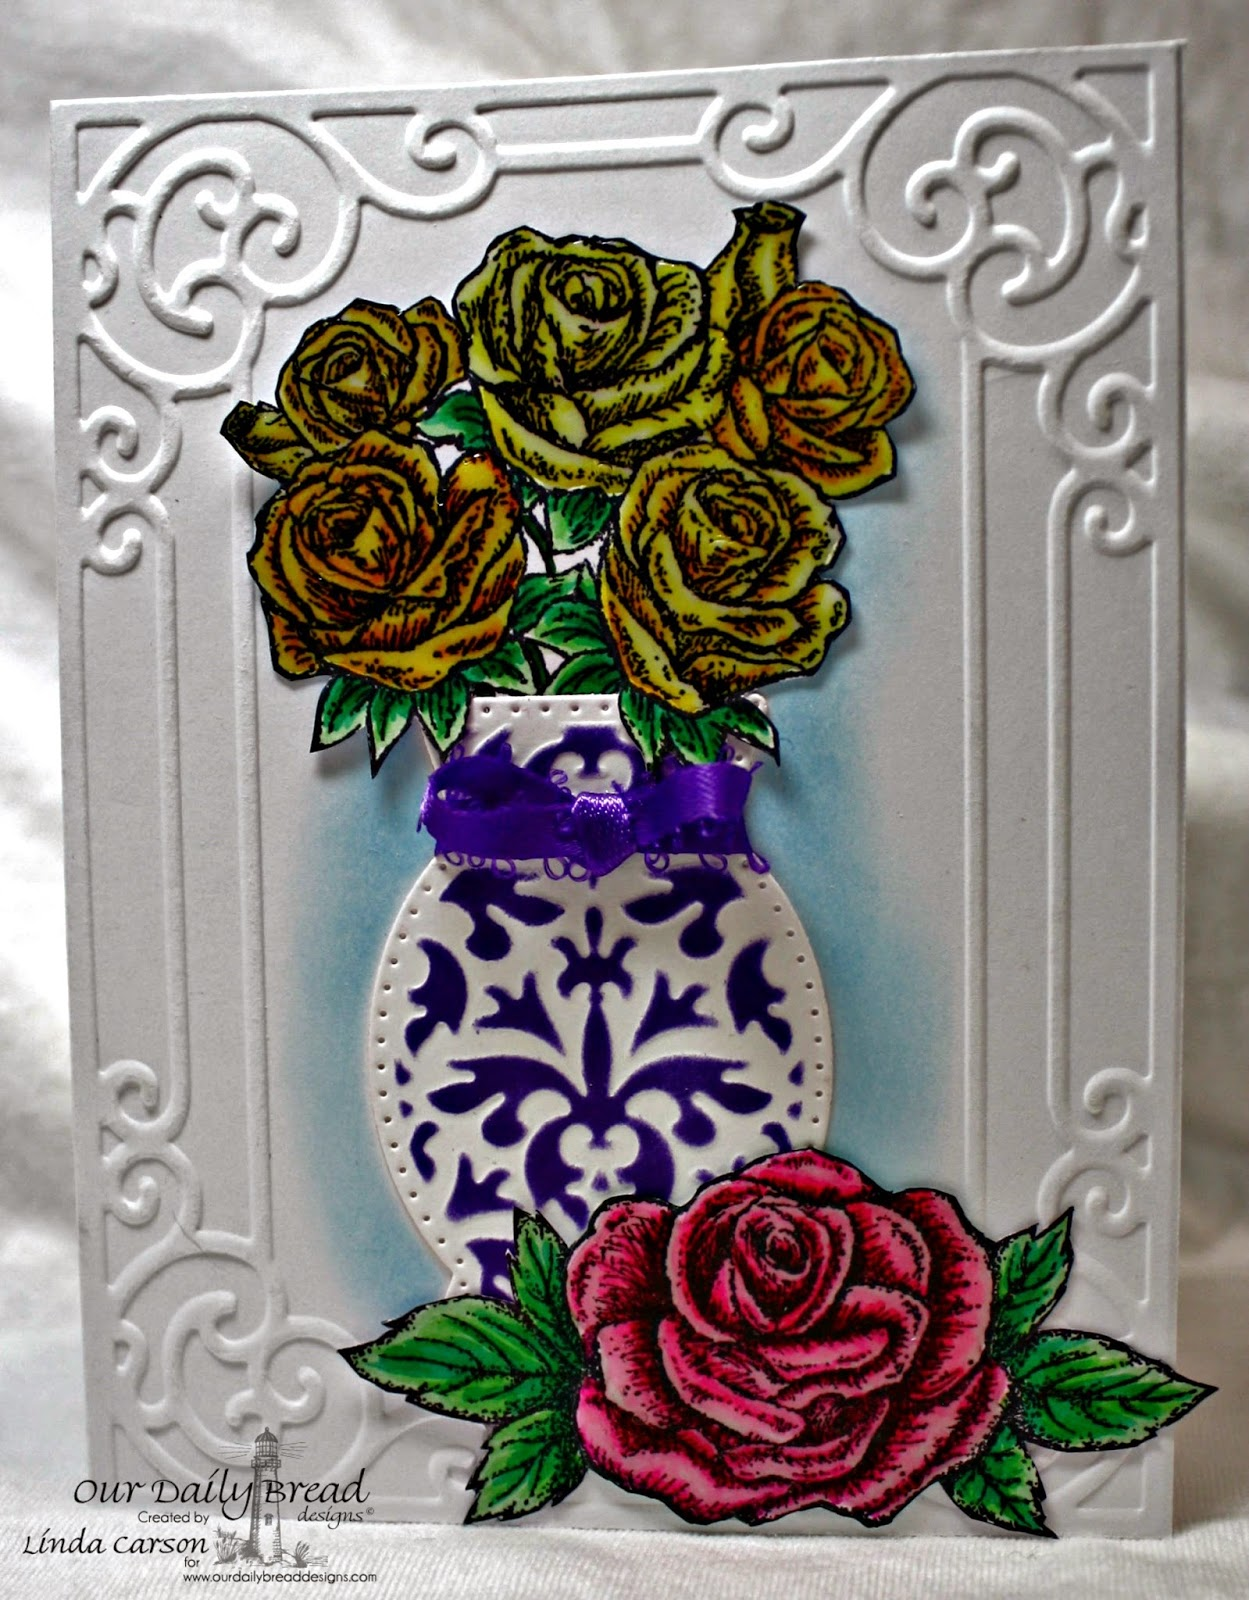 Properties:  ODBD, Rose Bouquet, My Friend, Decorative Vase die, designer Linda Carson